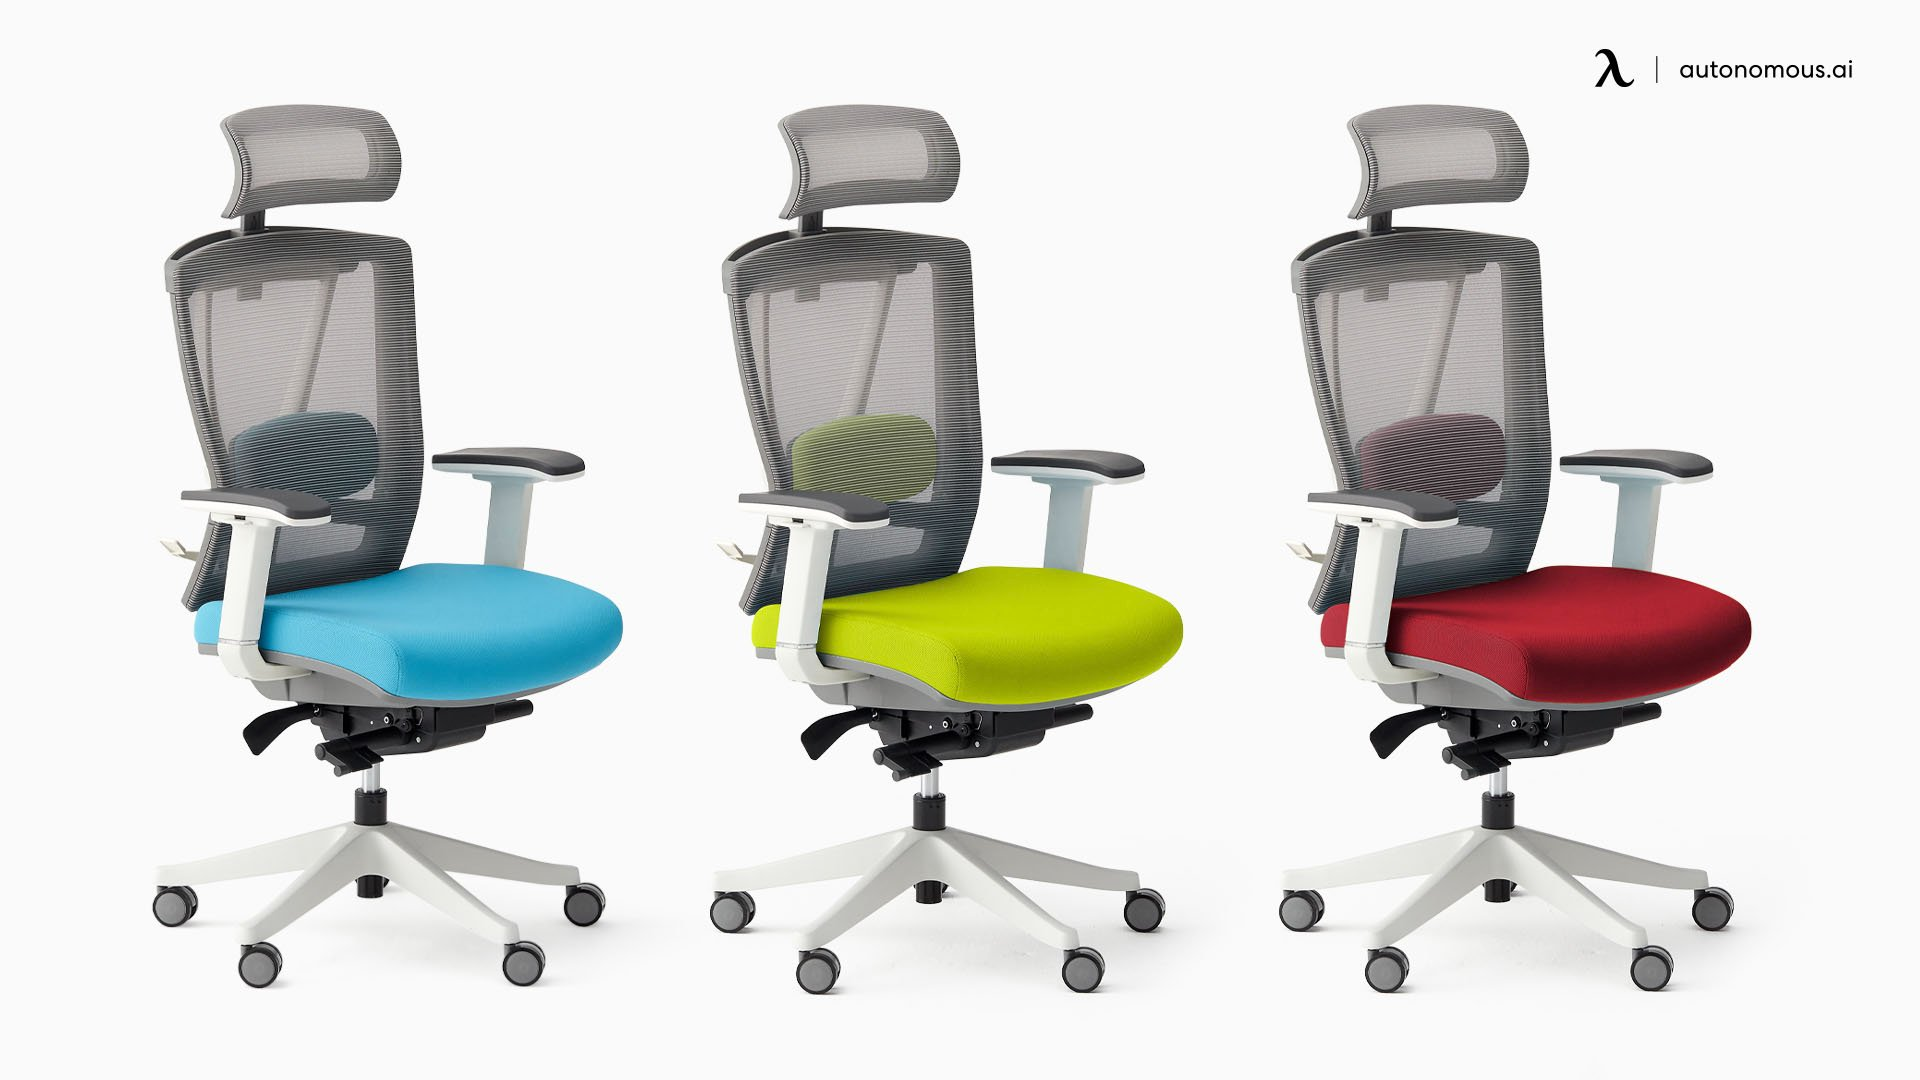 The Two Best Ergonomic Office Chairs Sold by Autonomous